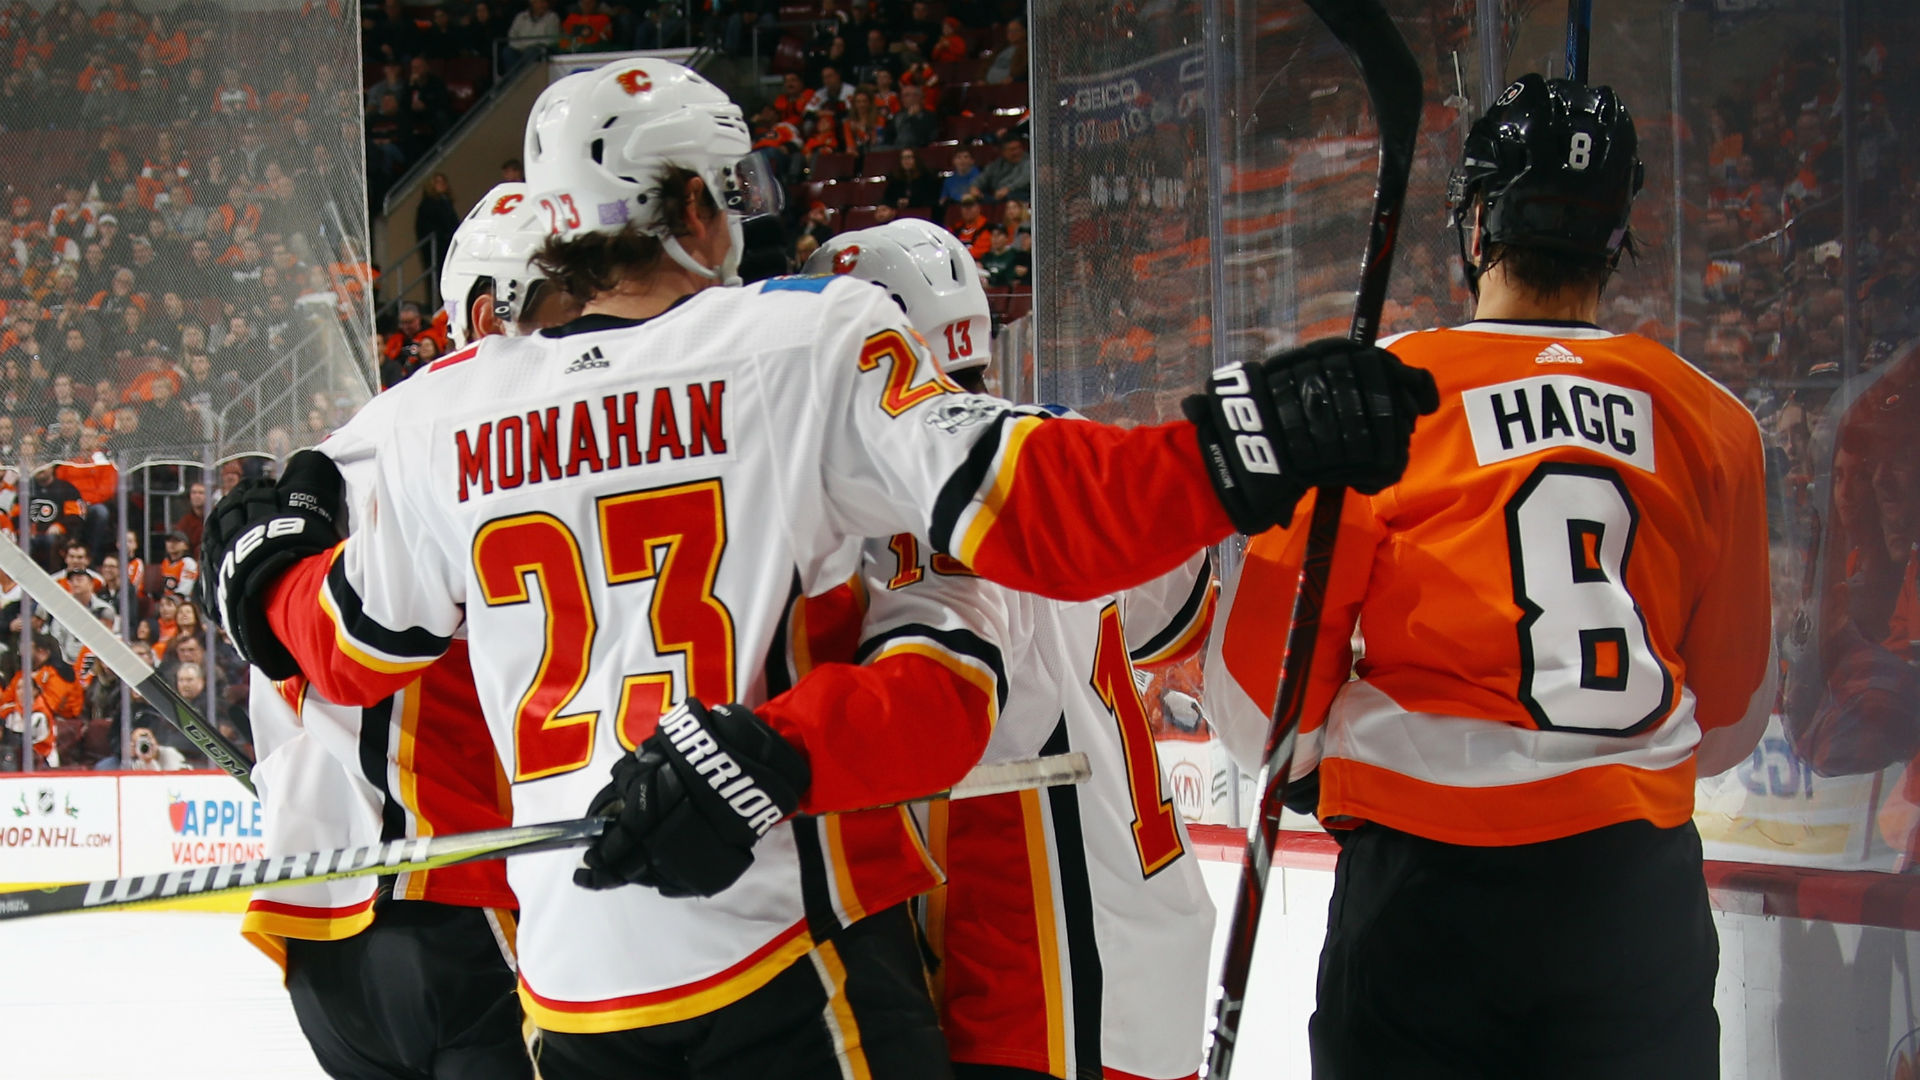 Monahan's 1st hat trick fuels Flames